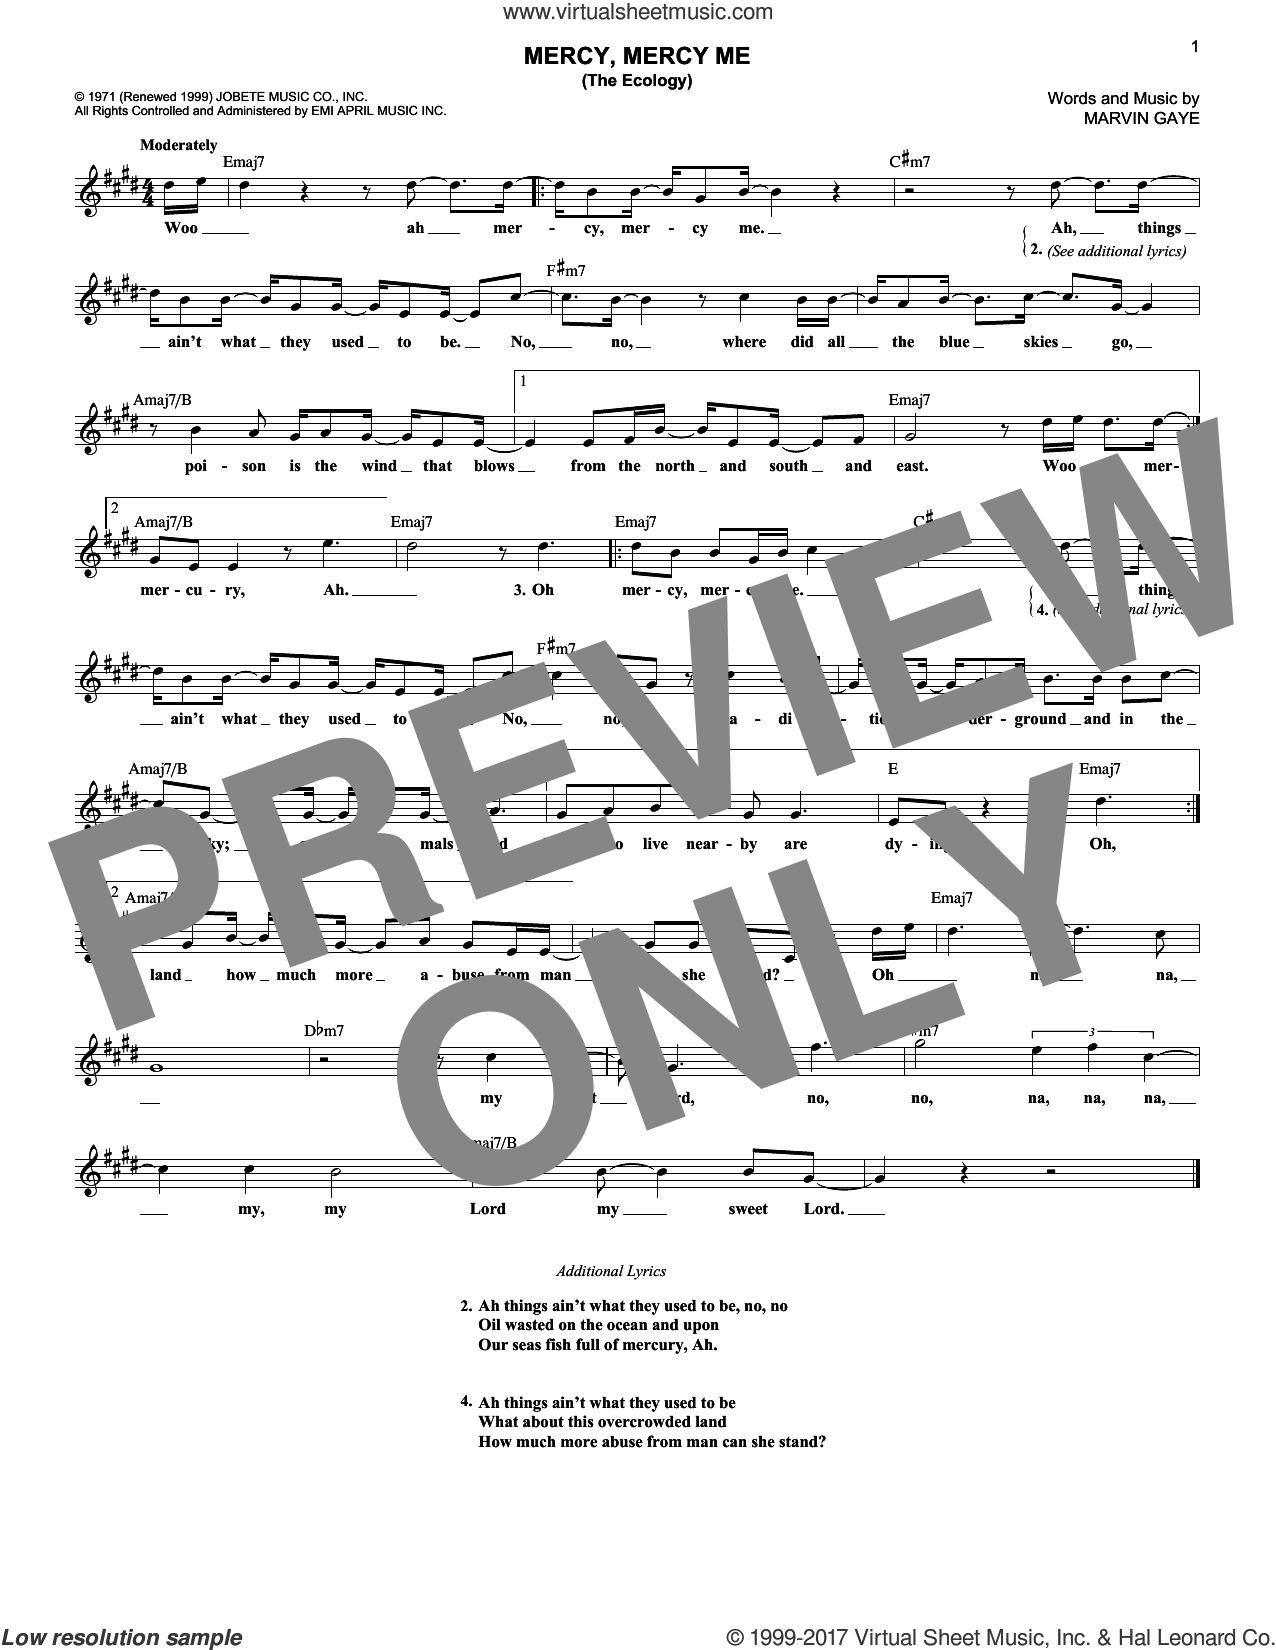 Mercy, Mercy Me (The Ecology) sheet music for voice and other instruments (fake book) by Marvin Gaye, intermediate skill level